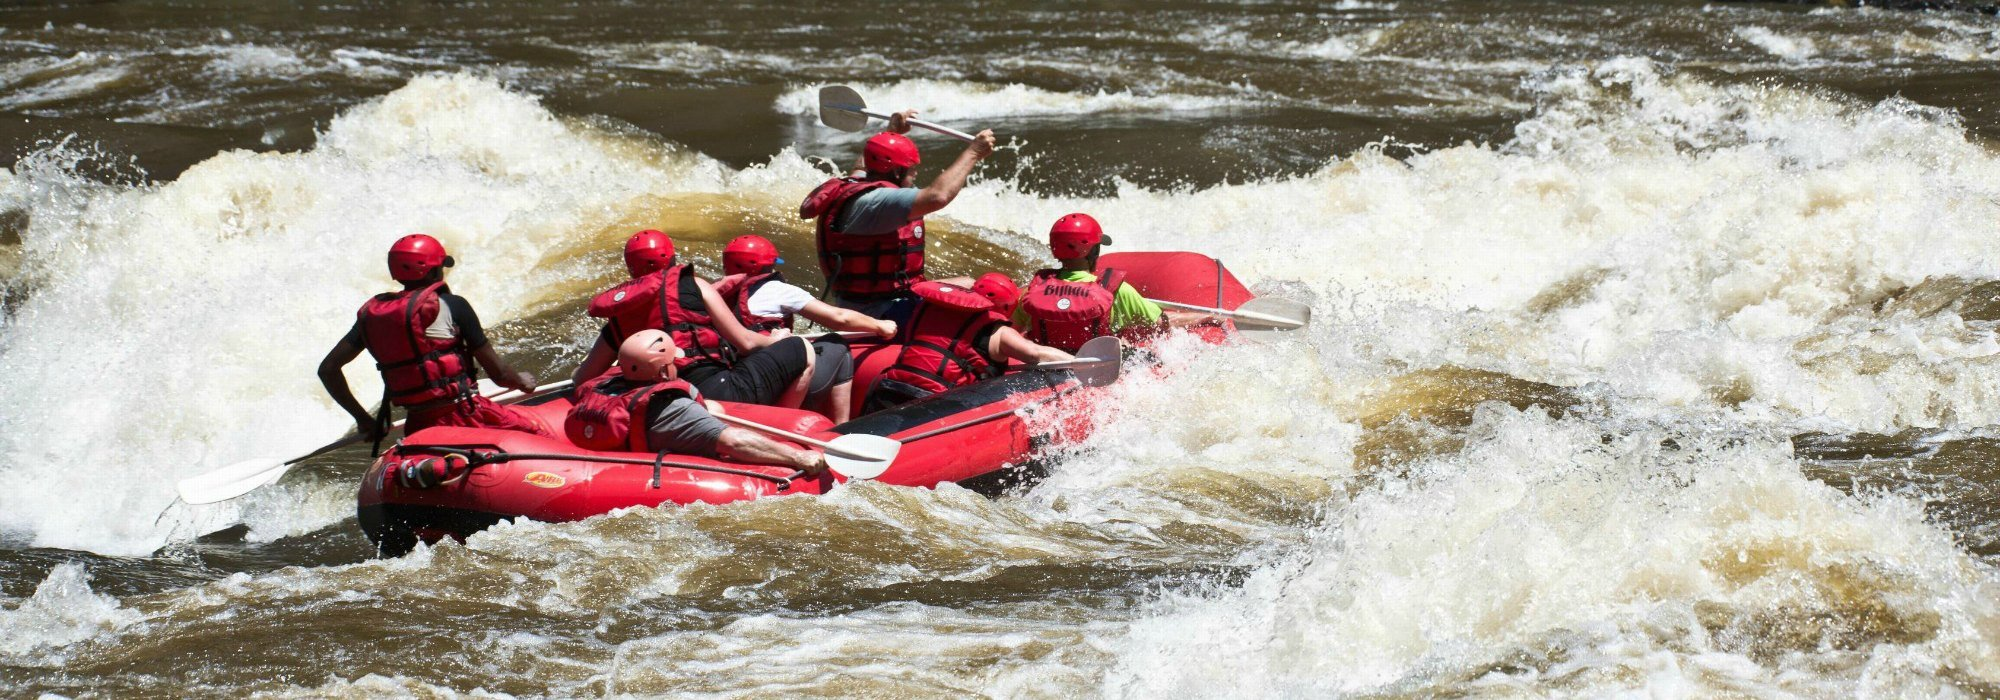 Victoria Falls White Water Rafting